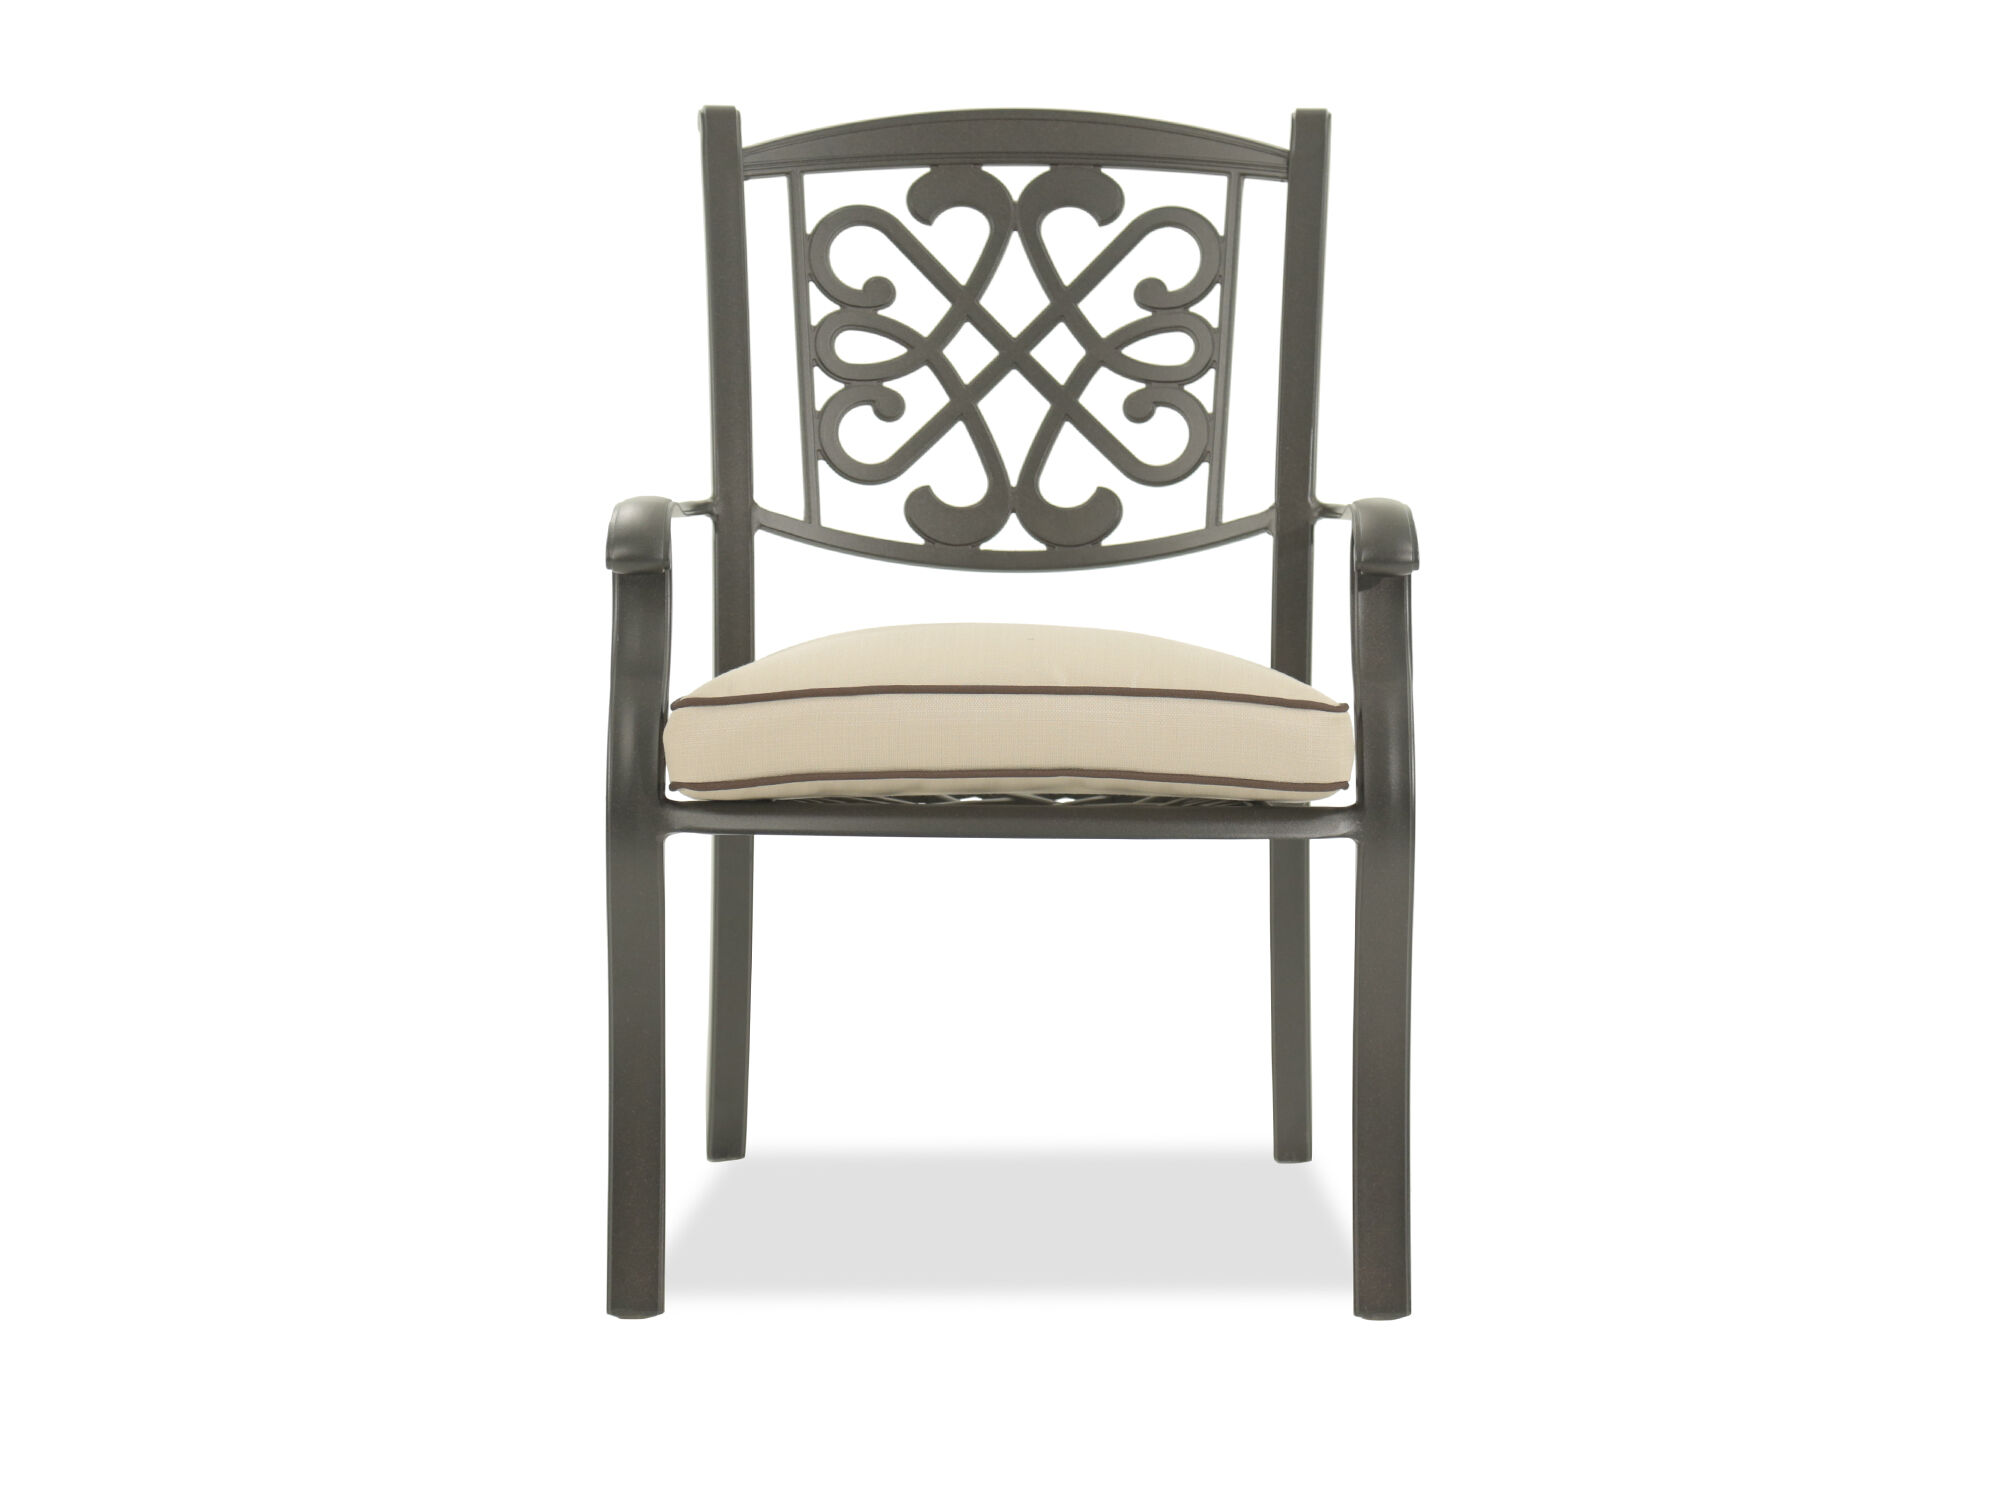 metal outdoor chair gym as seen on tv patio chairs seating mathis brothers scrollwork aluminum with cushion in dark brown